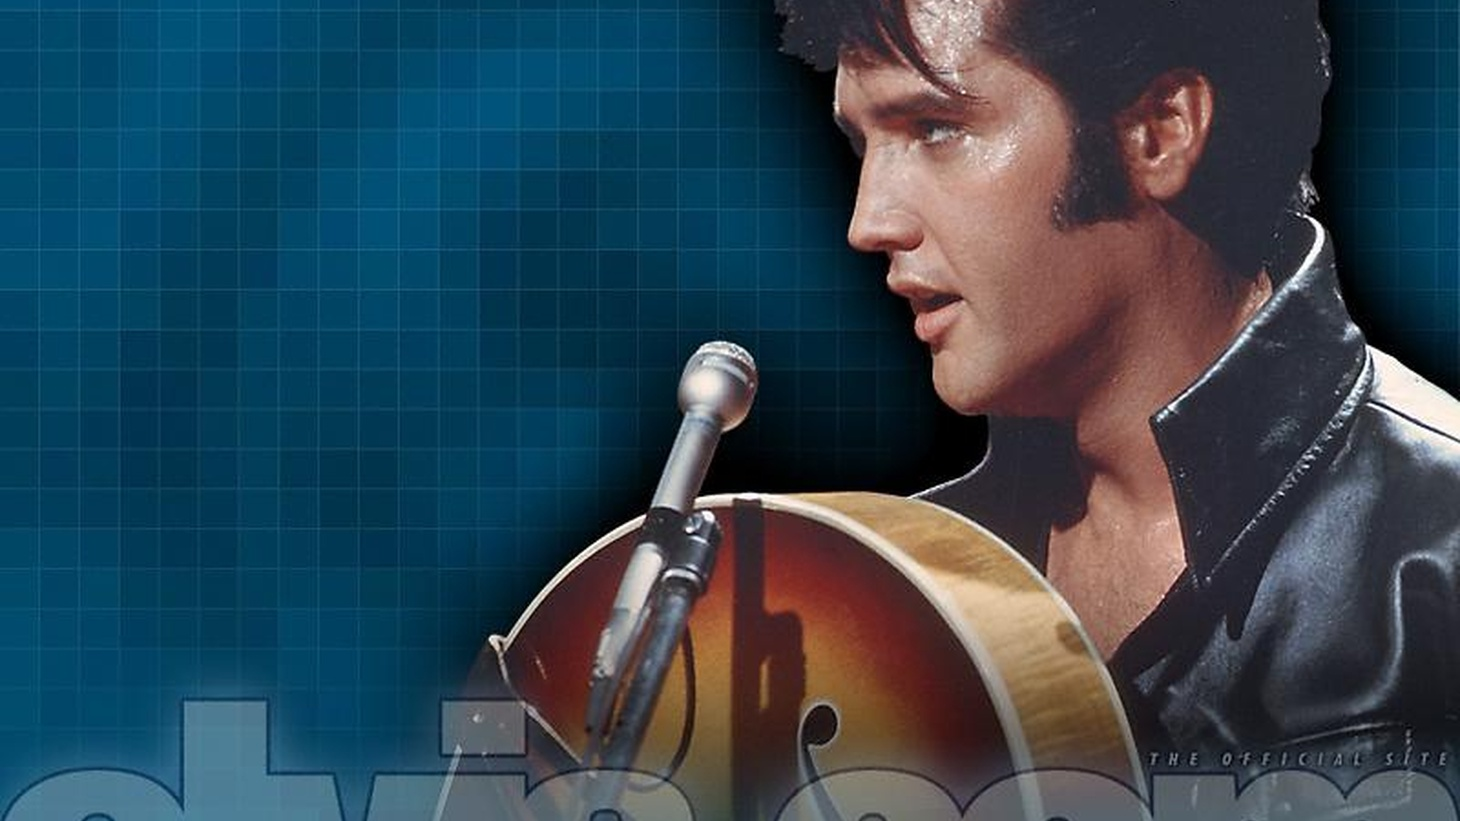 In 1969, Elvis returned to his hometown to work with hit-makers American Sound Studios and created one of his most critically acclaimed albums. (Airs 4-5pm and prempts All Things Considered)